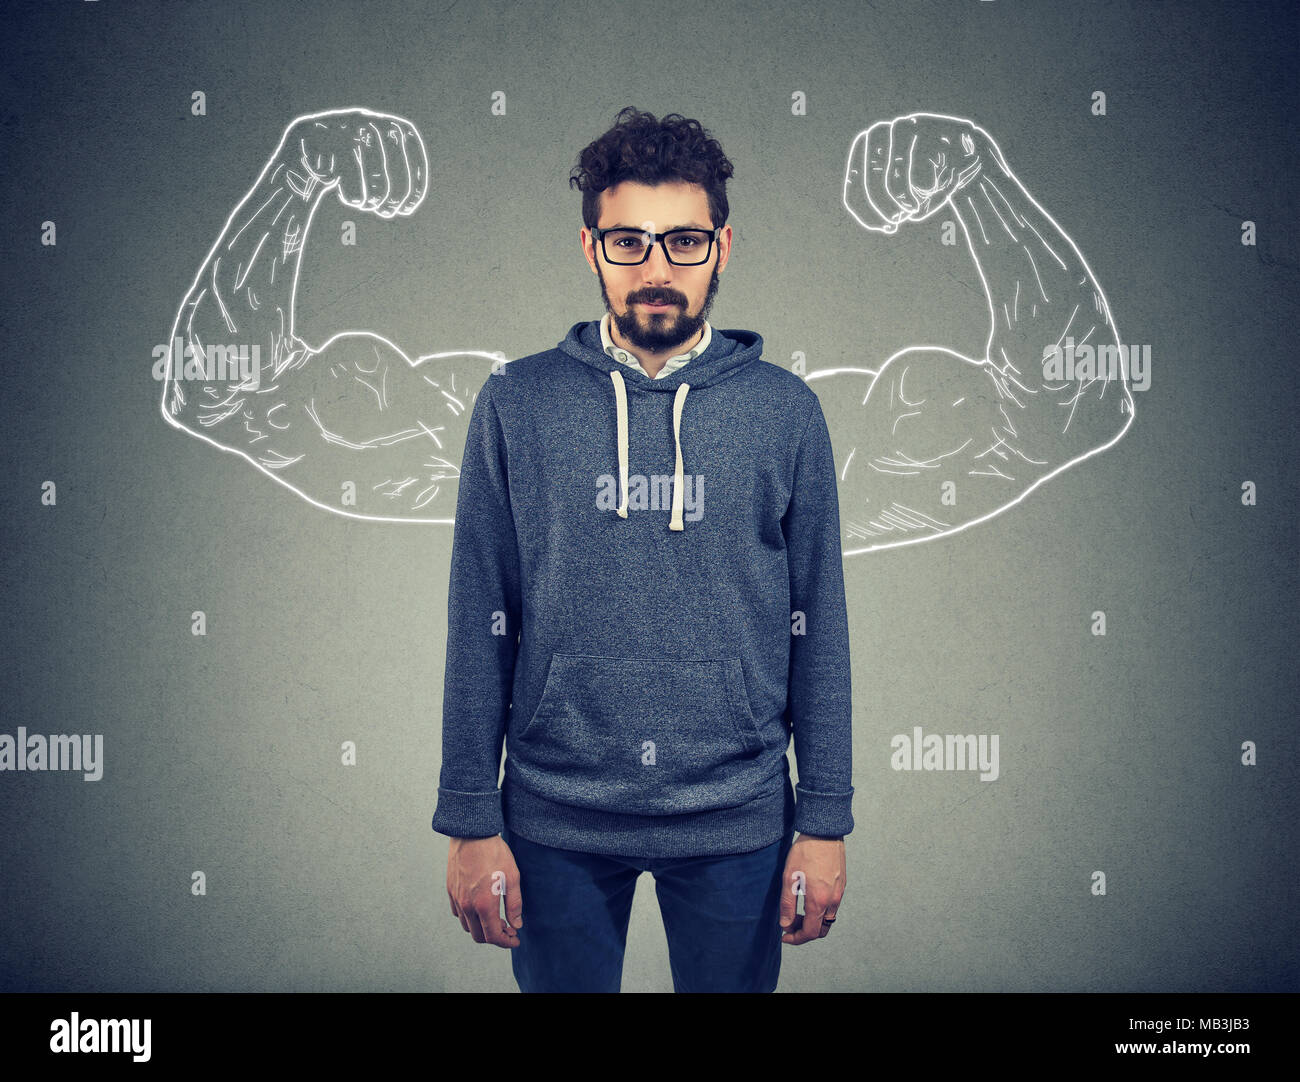 Strong confident young man hipster - Stock Image